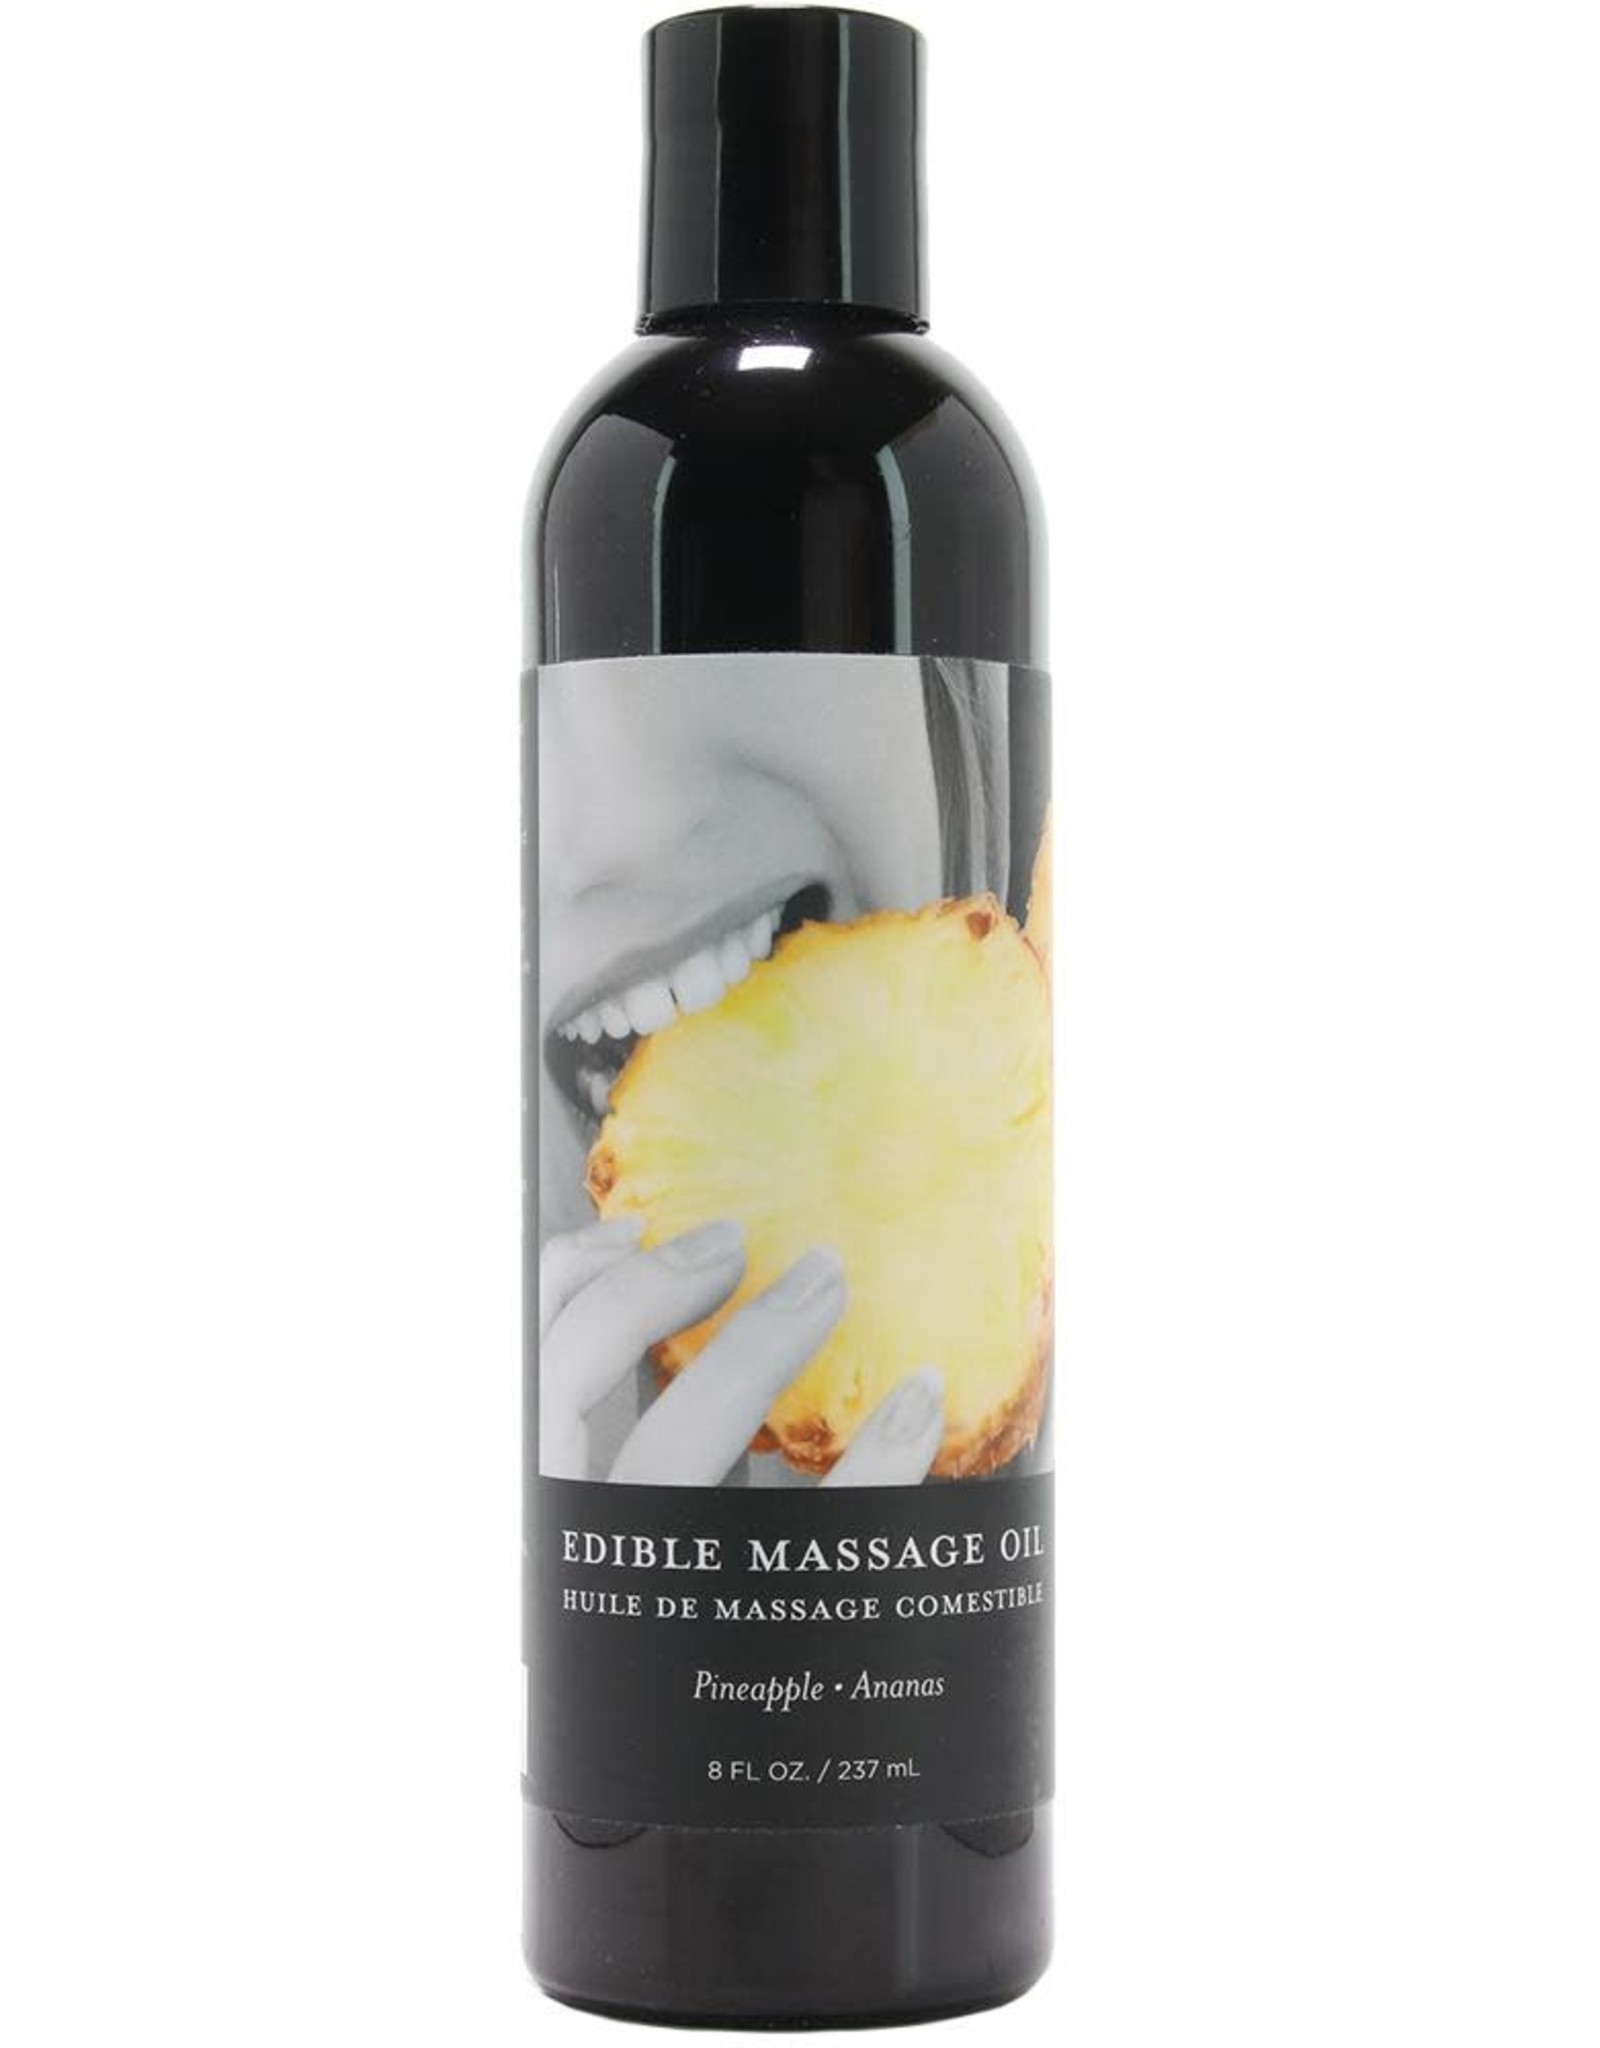 EARTHLY BODY EARTHLY BODIES - EDIBLE MASSAGE OIL - PINEAPPLE  8oz